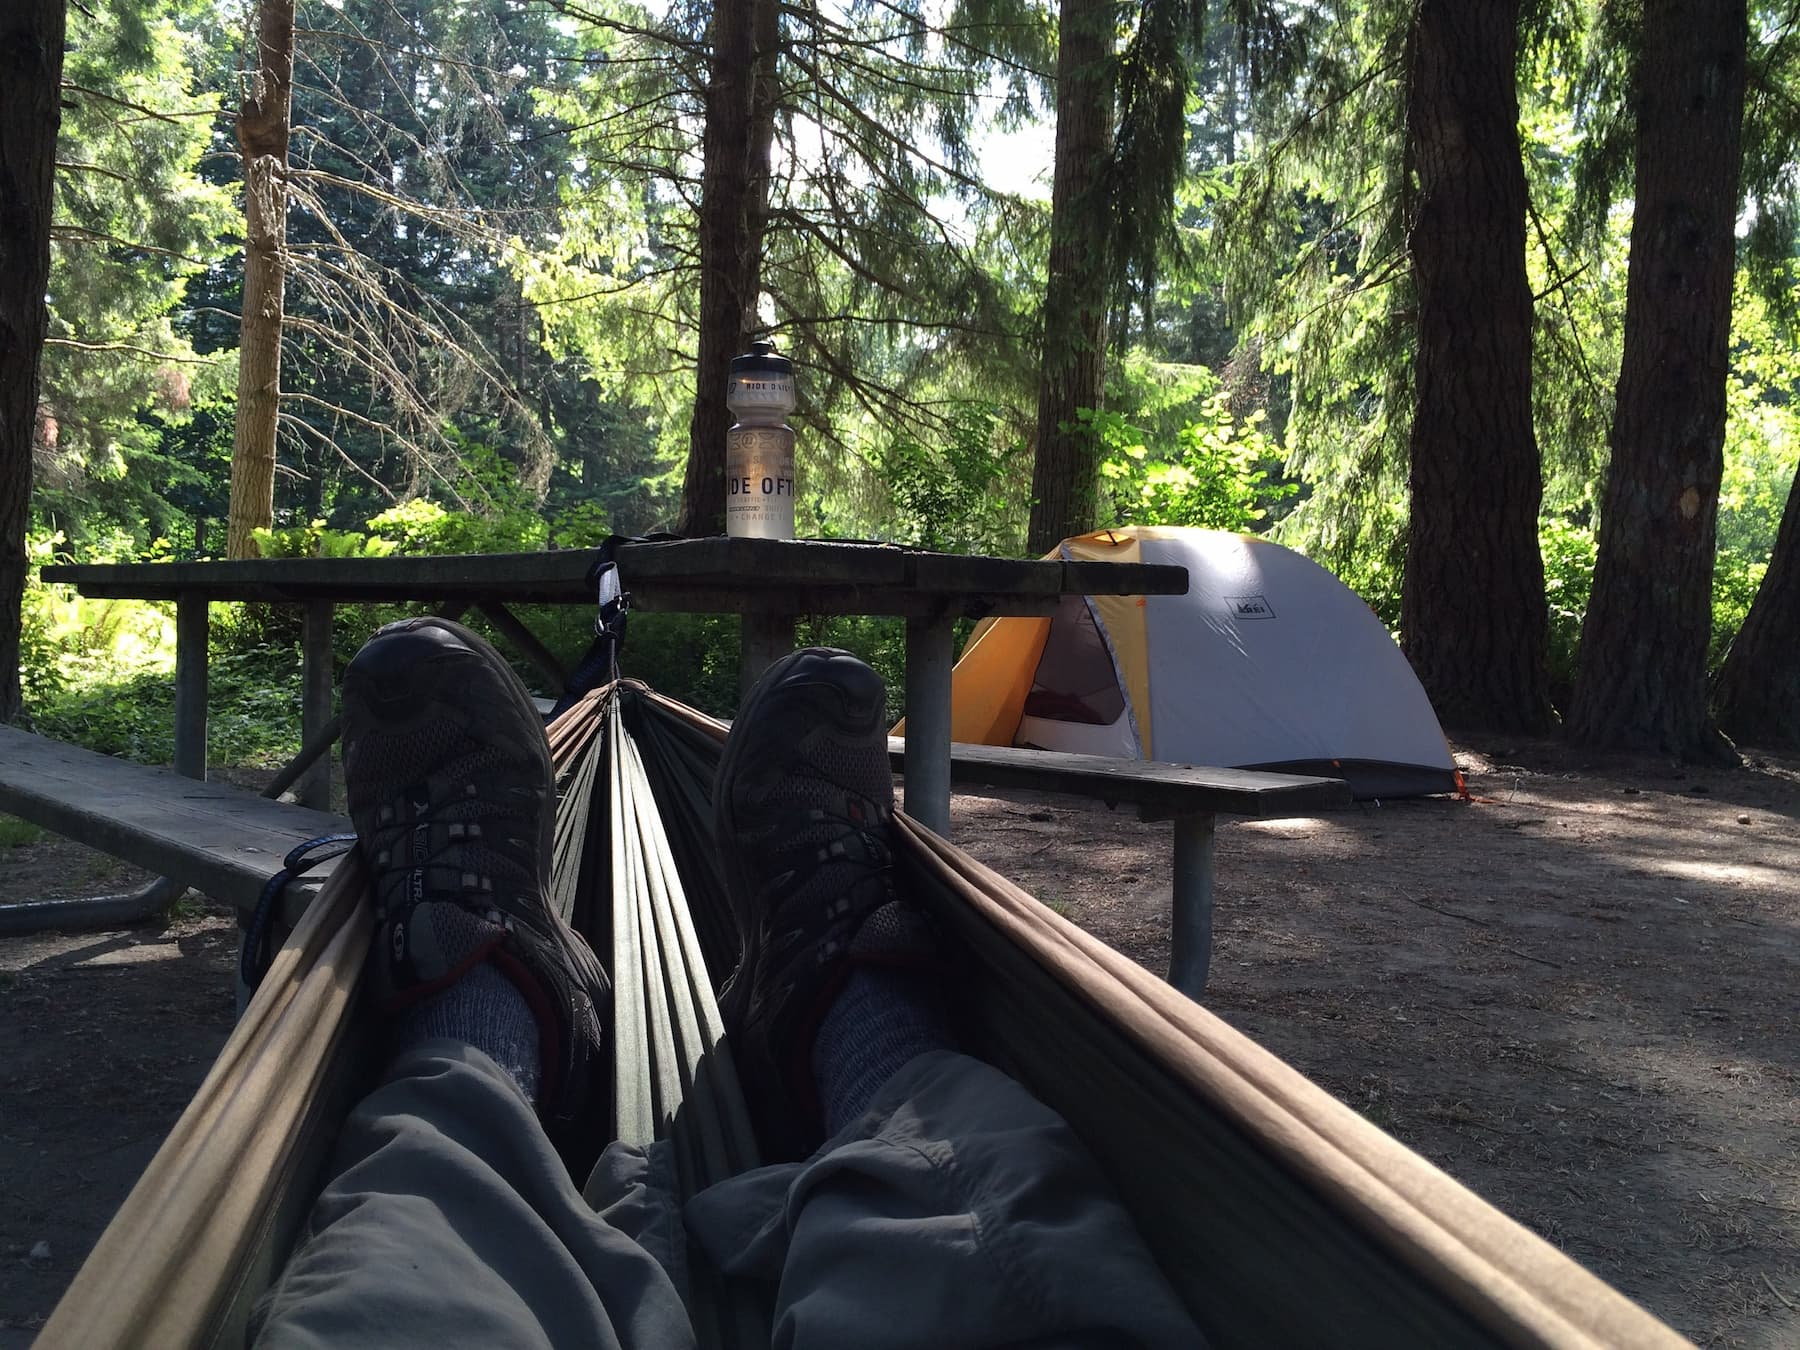 Point of view image from hammock at campsite with picnic table and orange tent.